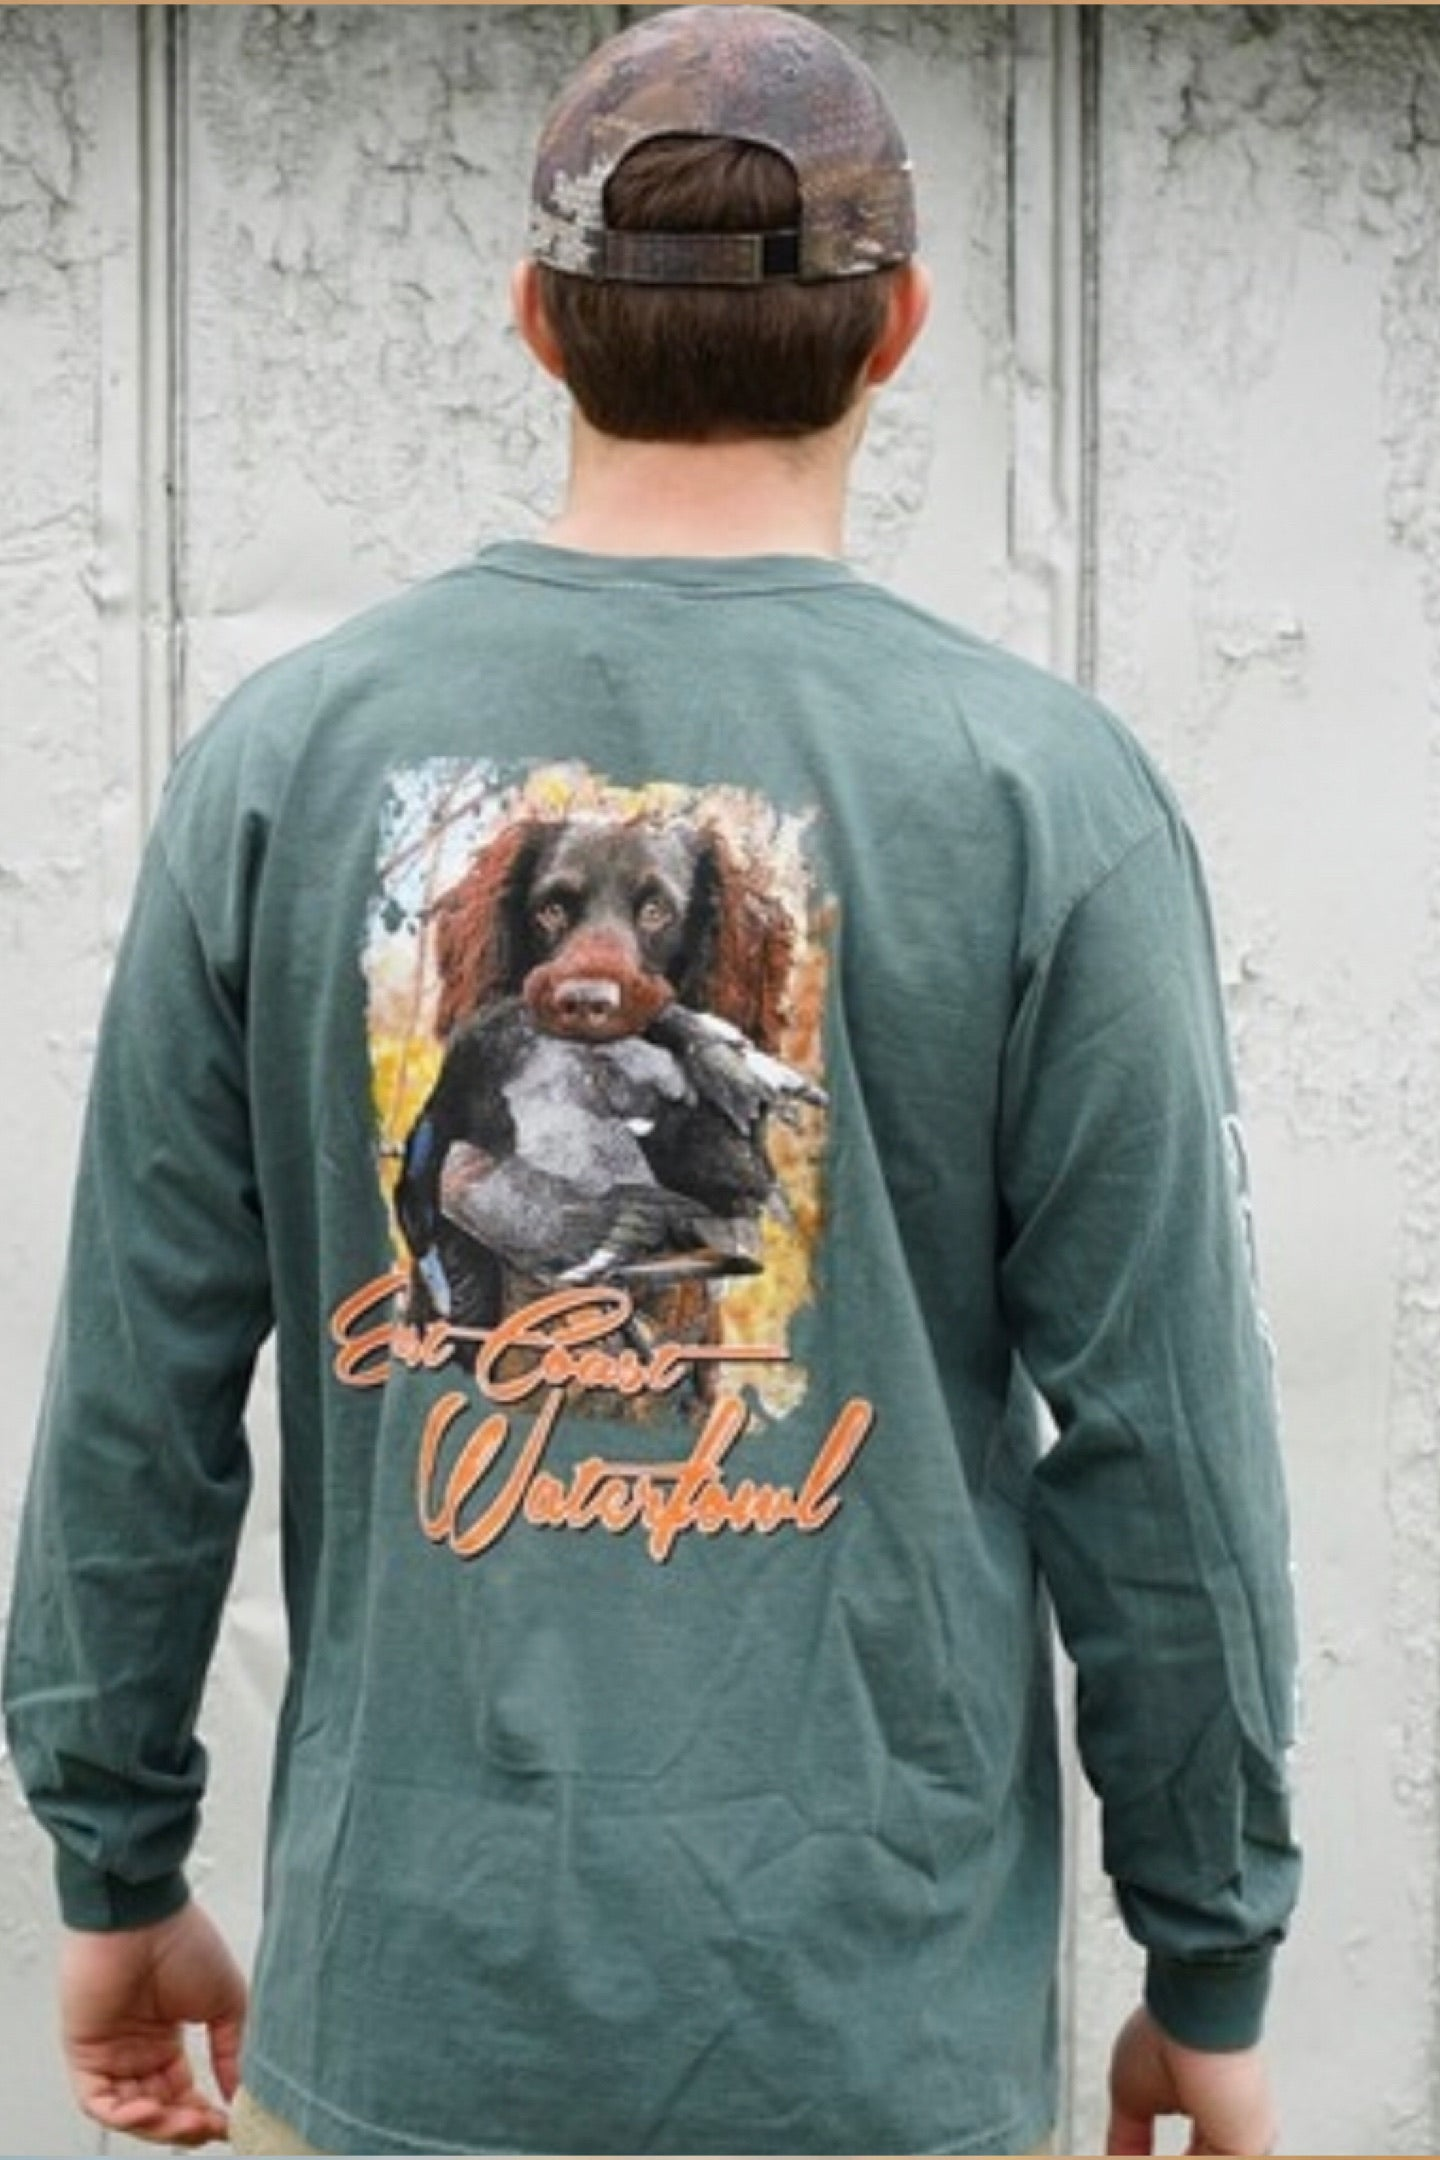 Boykin Spaniel Waylon T-Shirt by East Coast Waterfowl